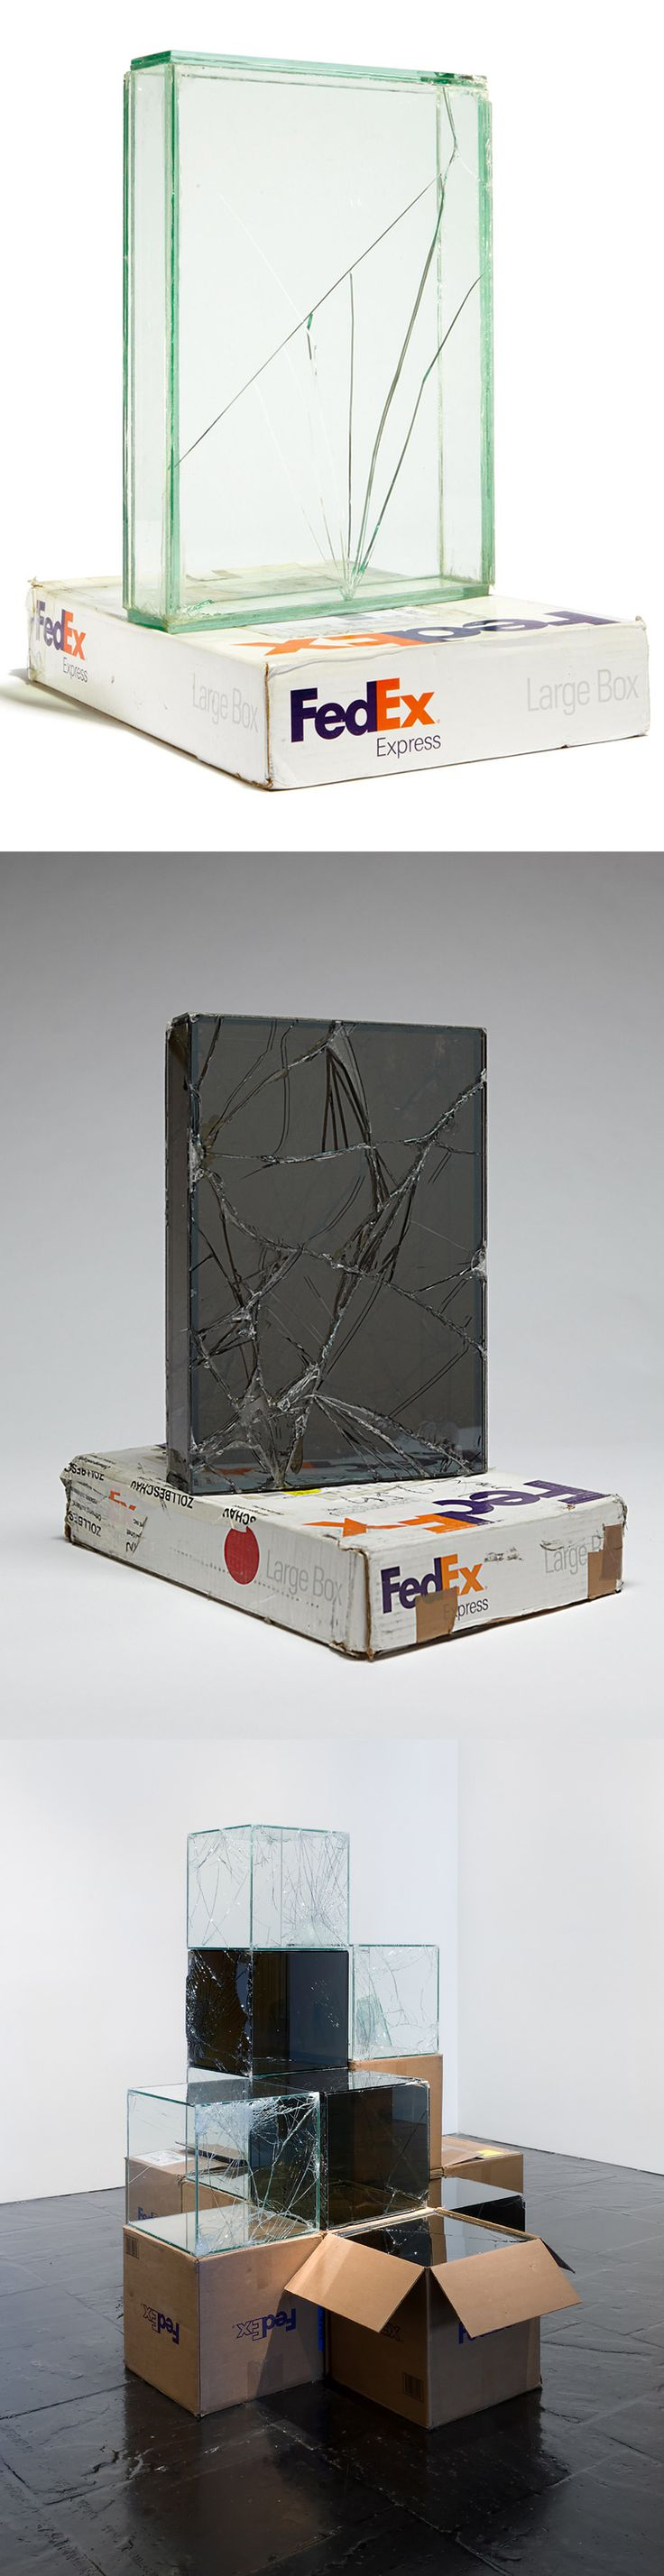 Artist Walead Beshty Shipped Glass Boxes Inside FedEx Boxes to Produce Shattered Sculptures